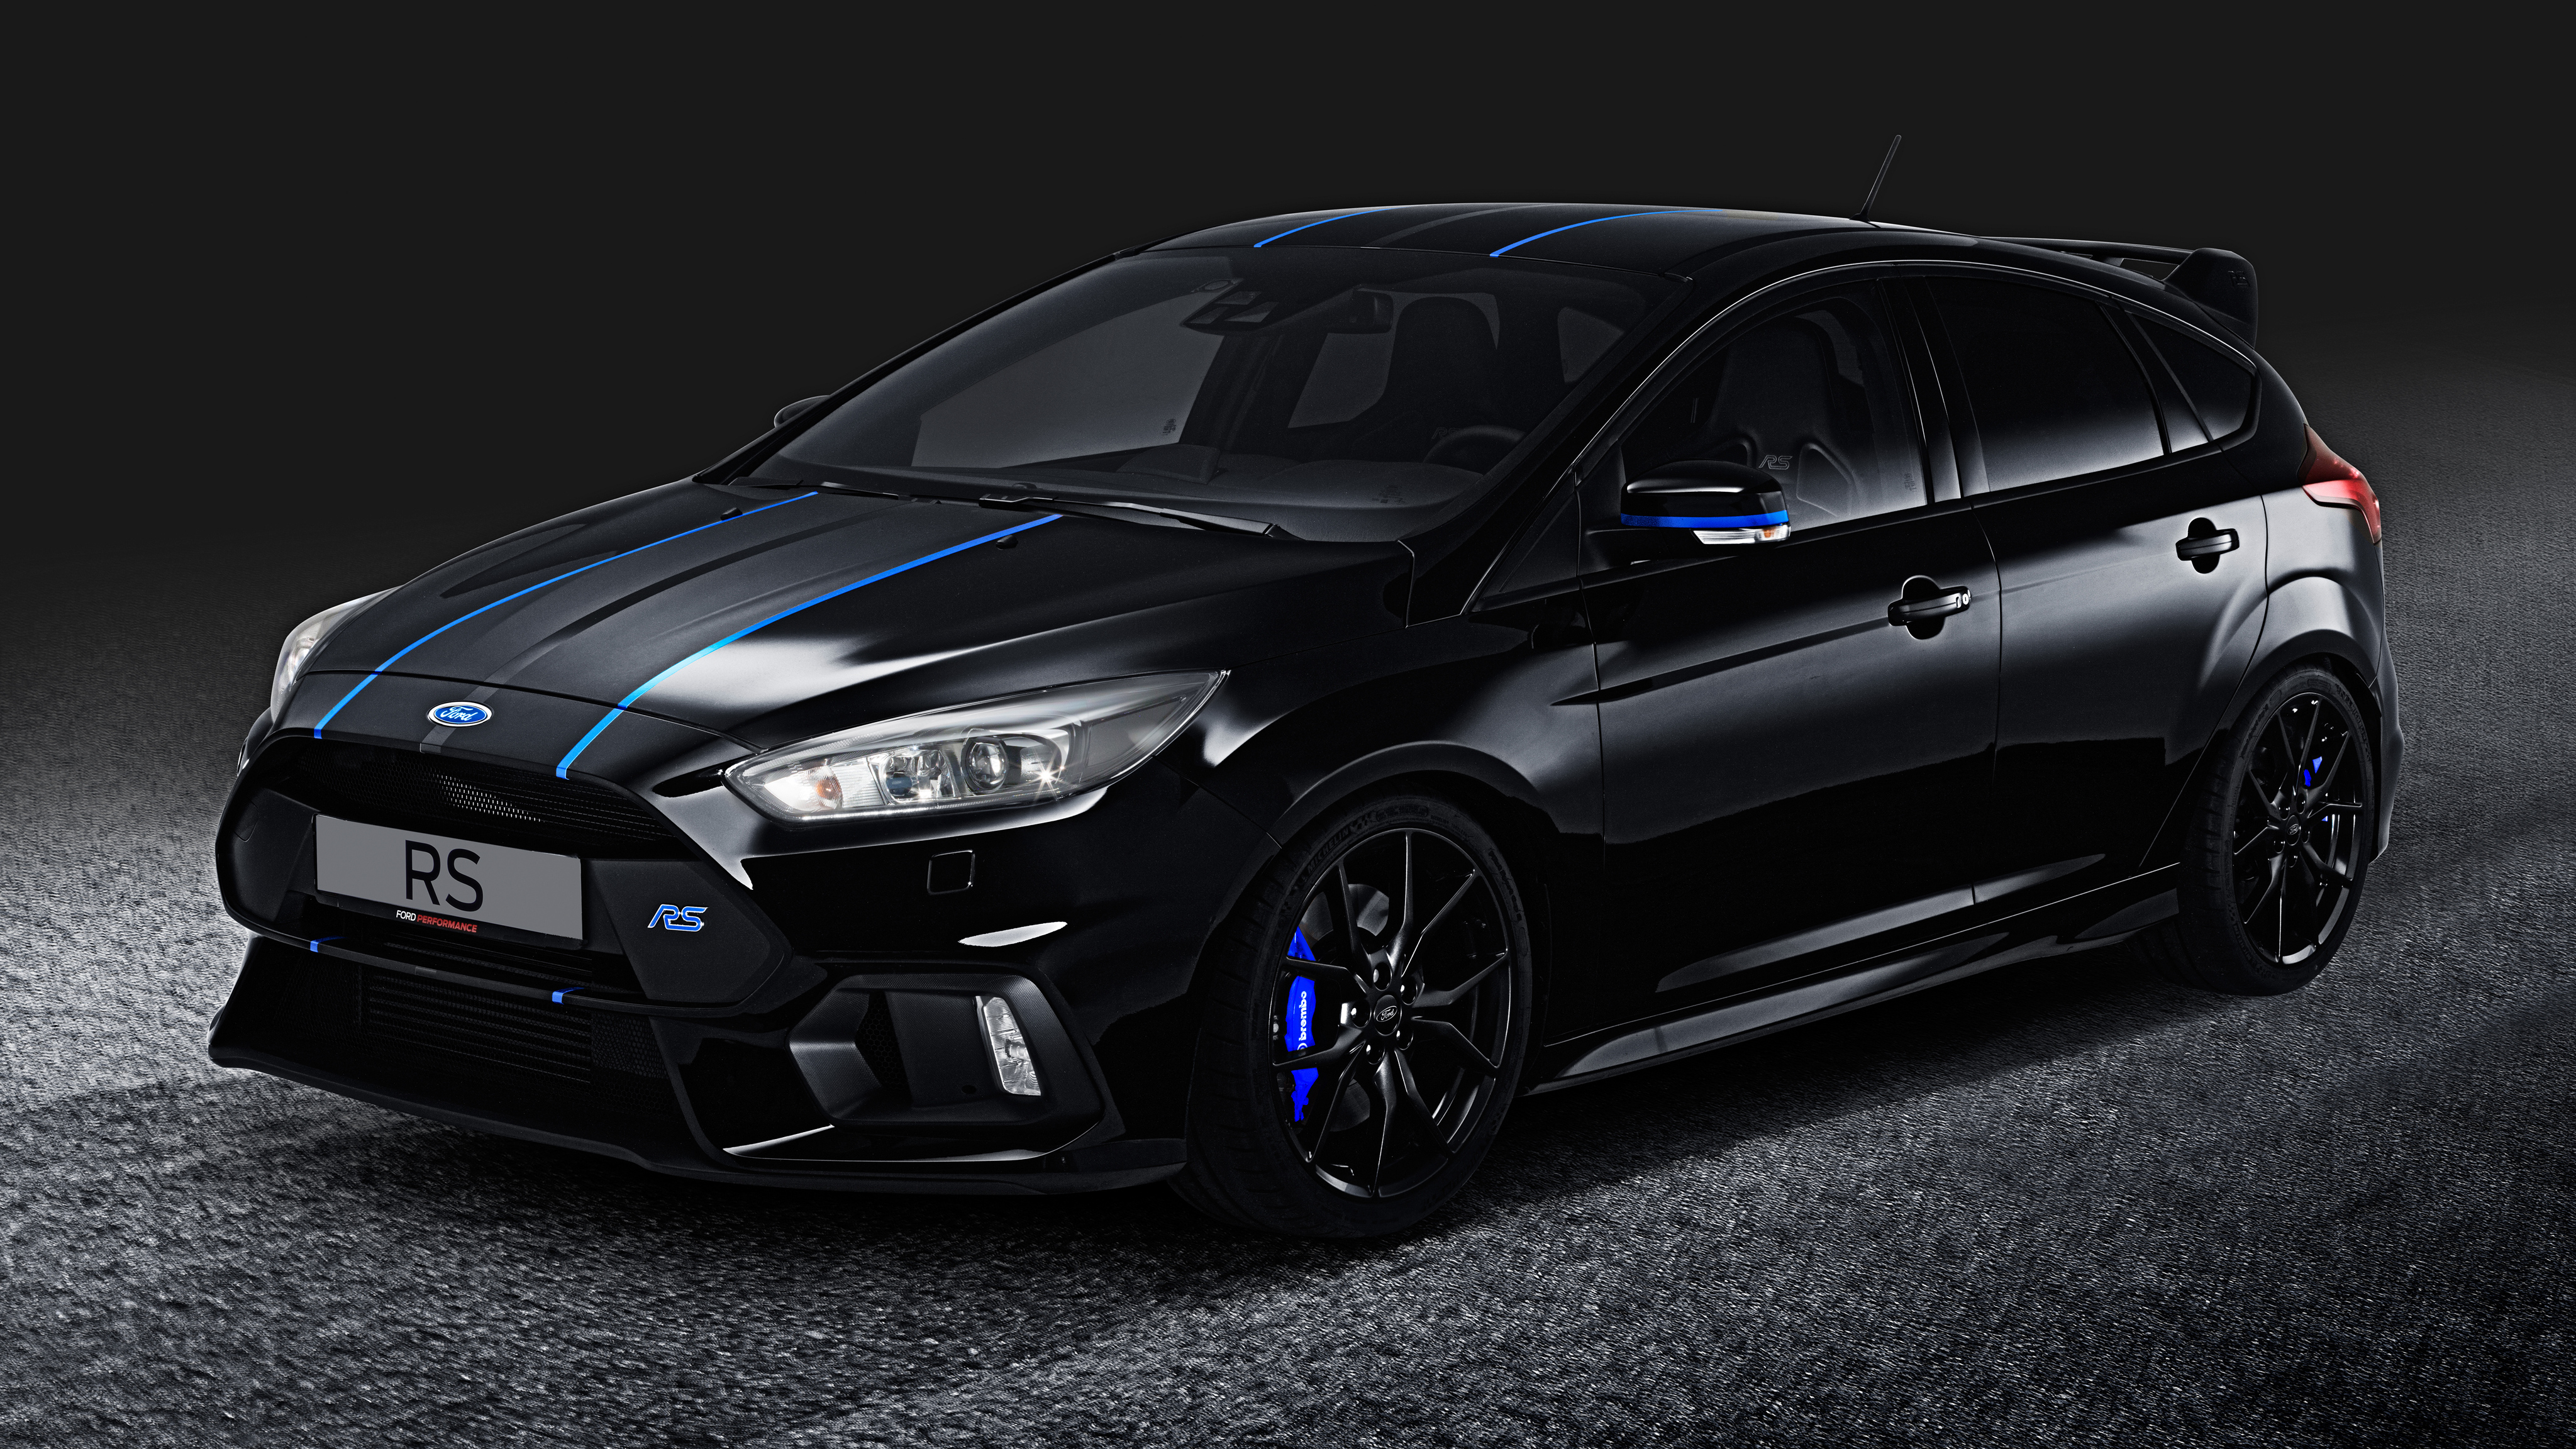 2017 ford focus rs performance parts 4k wallpaper hd car wallpapers id 9227. Black Bedroom Furniture Sets. Home Design Ideas